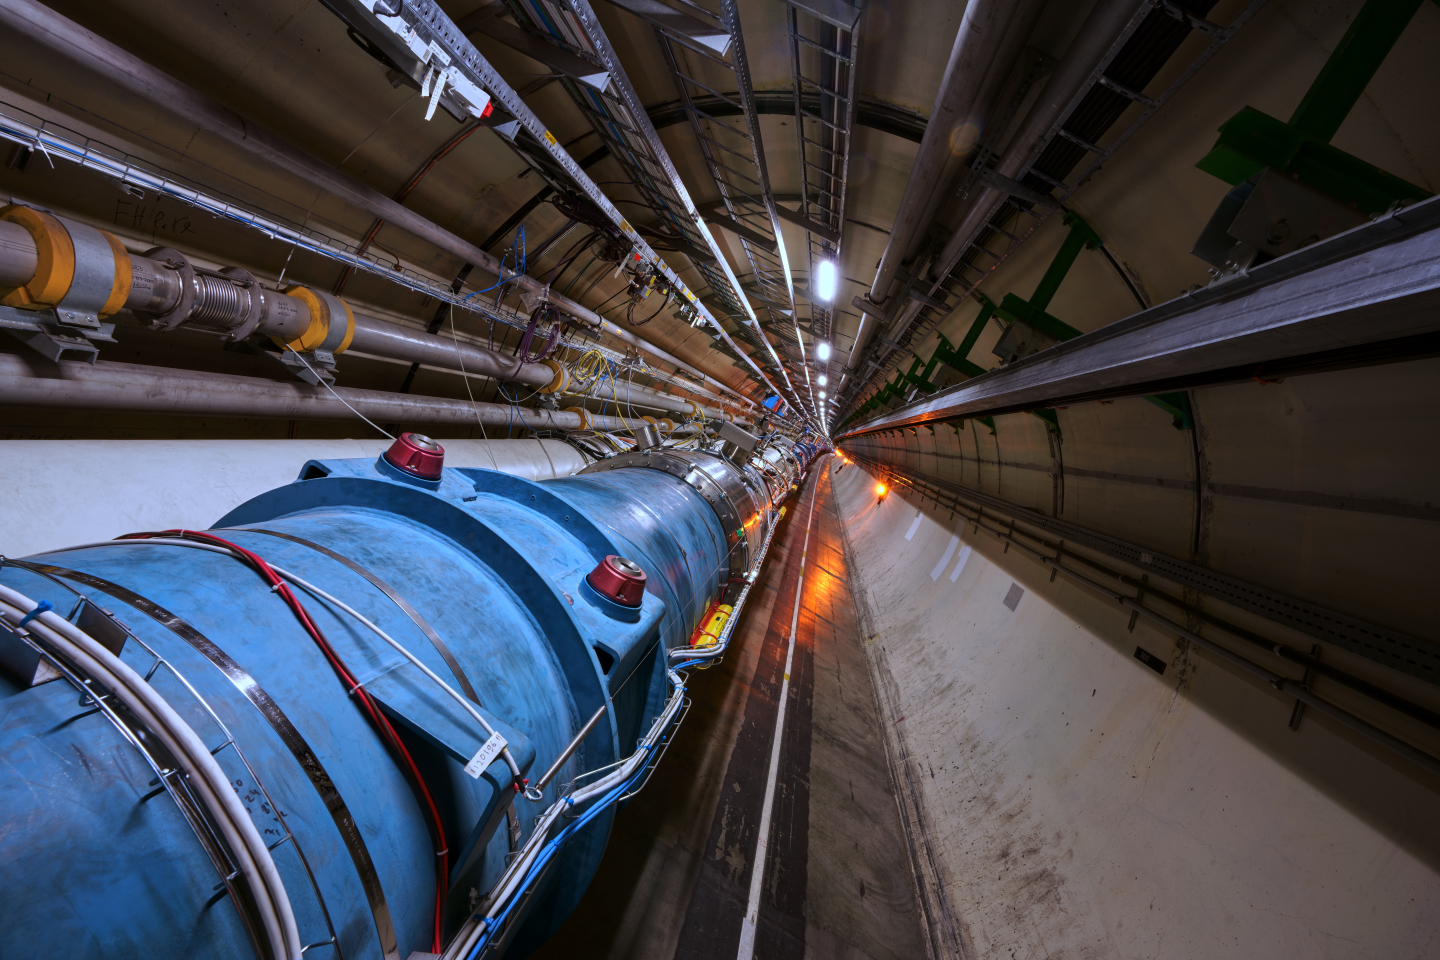 The world's largest atom smasher could be tweaked to hunt 'dark world' particles